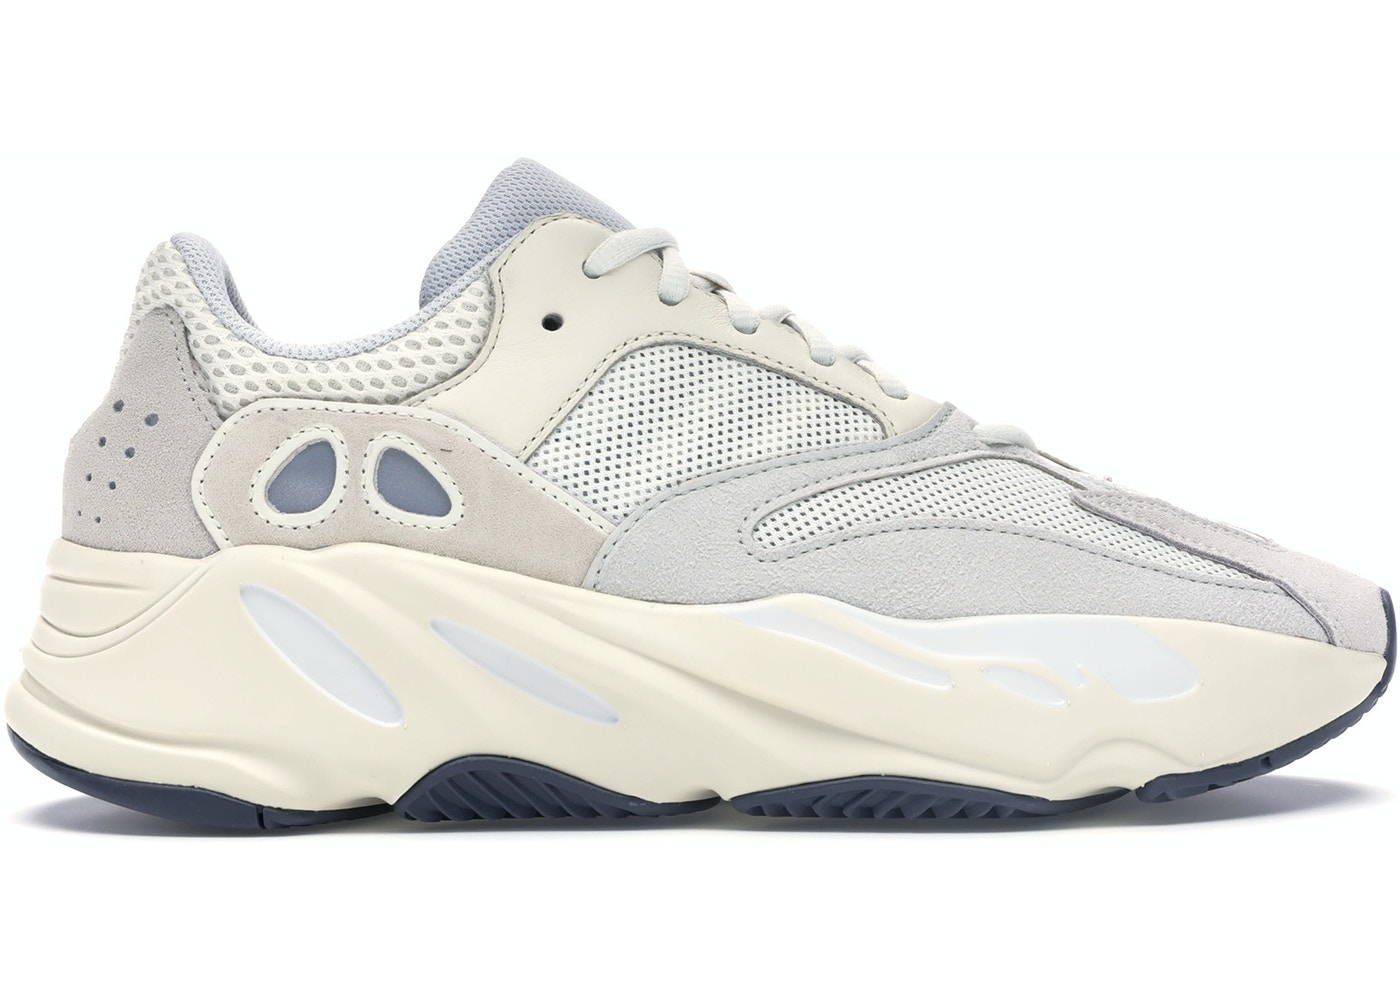 online store 70a2a 8a936 adidas Yeezy Boost 700 Analog